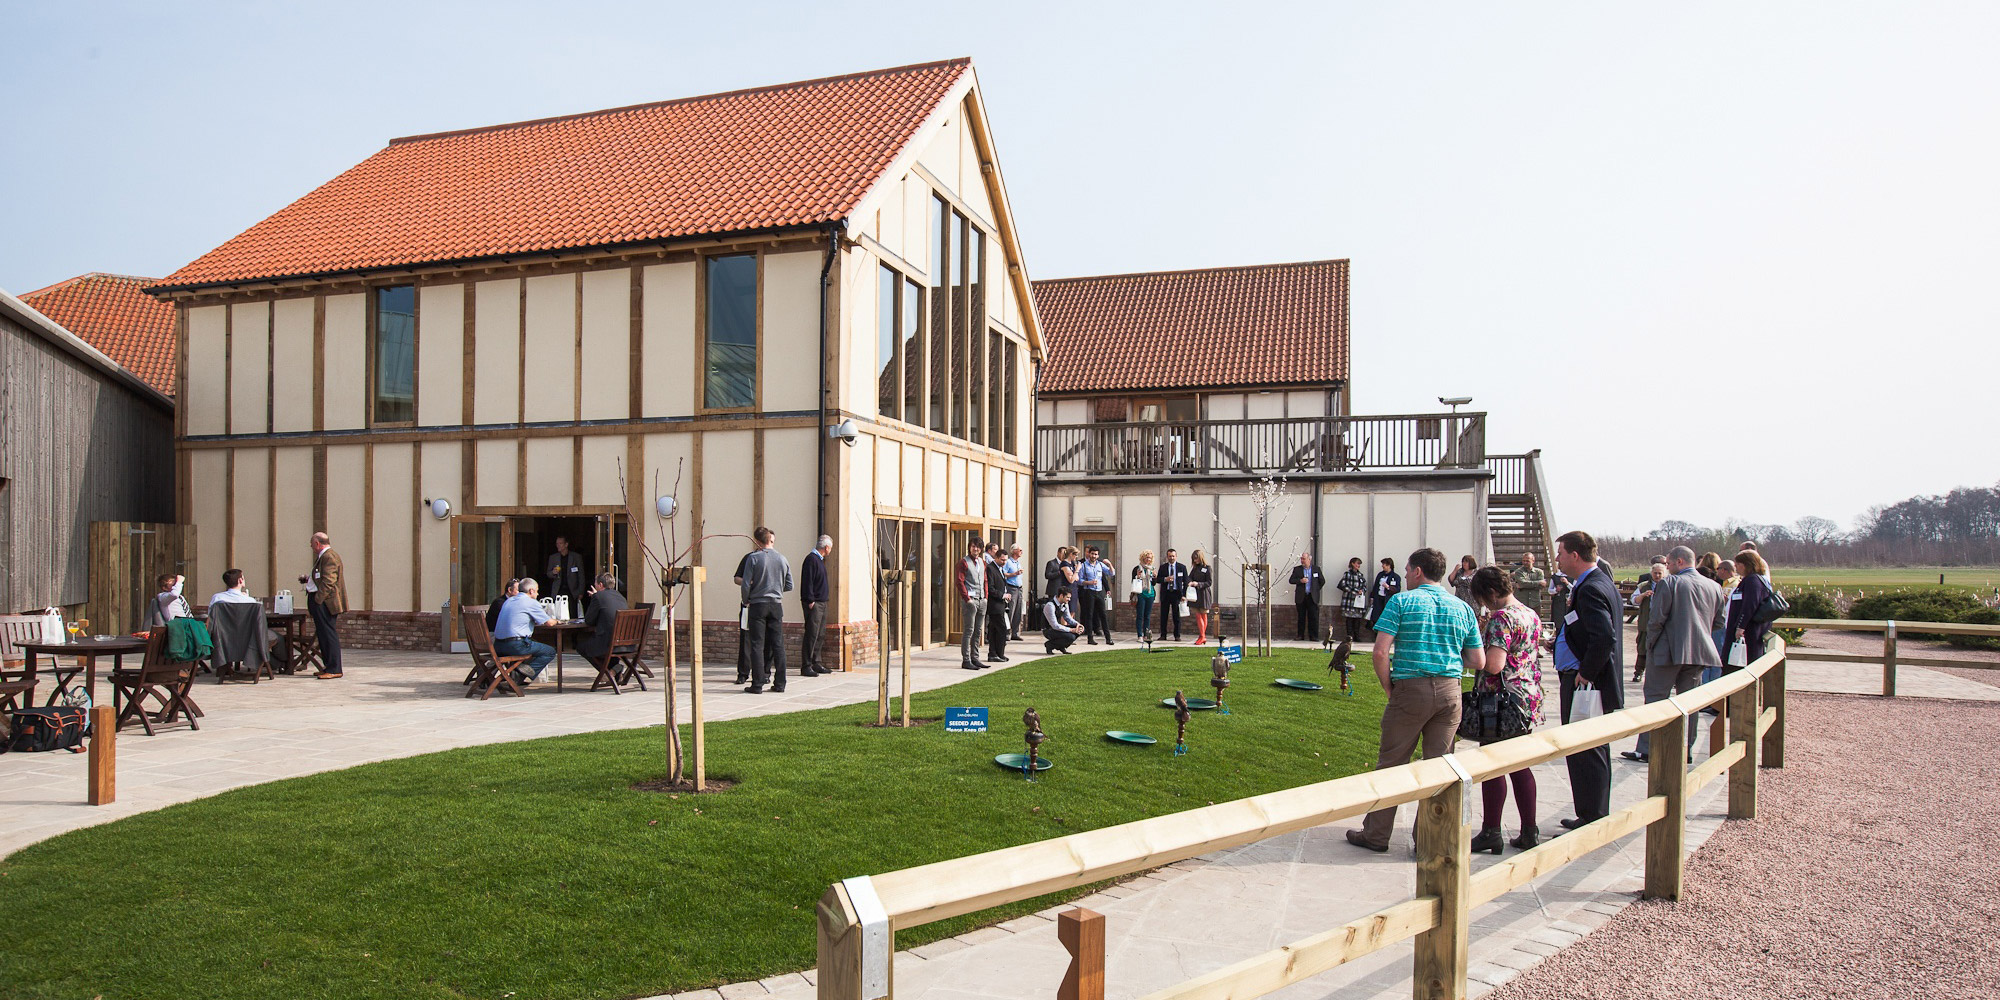 Sandburn Hall - A spacious expansion of the club's facilities